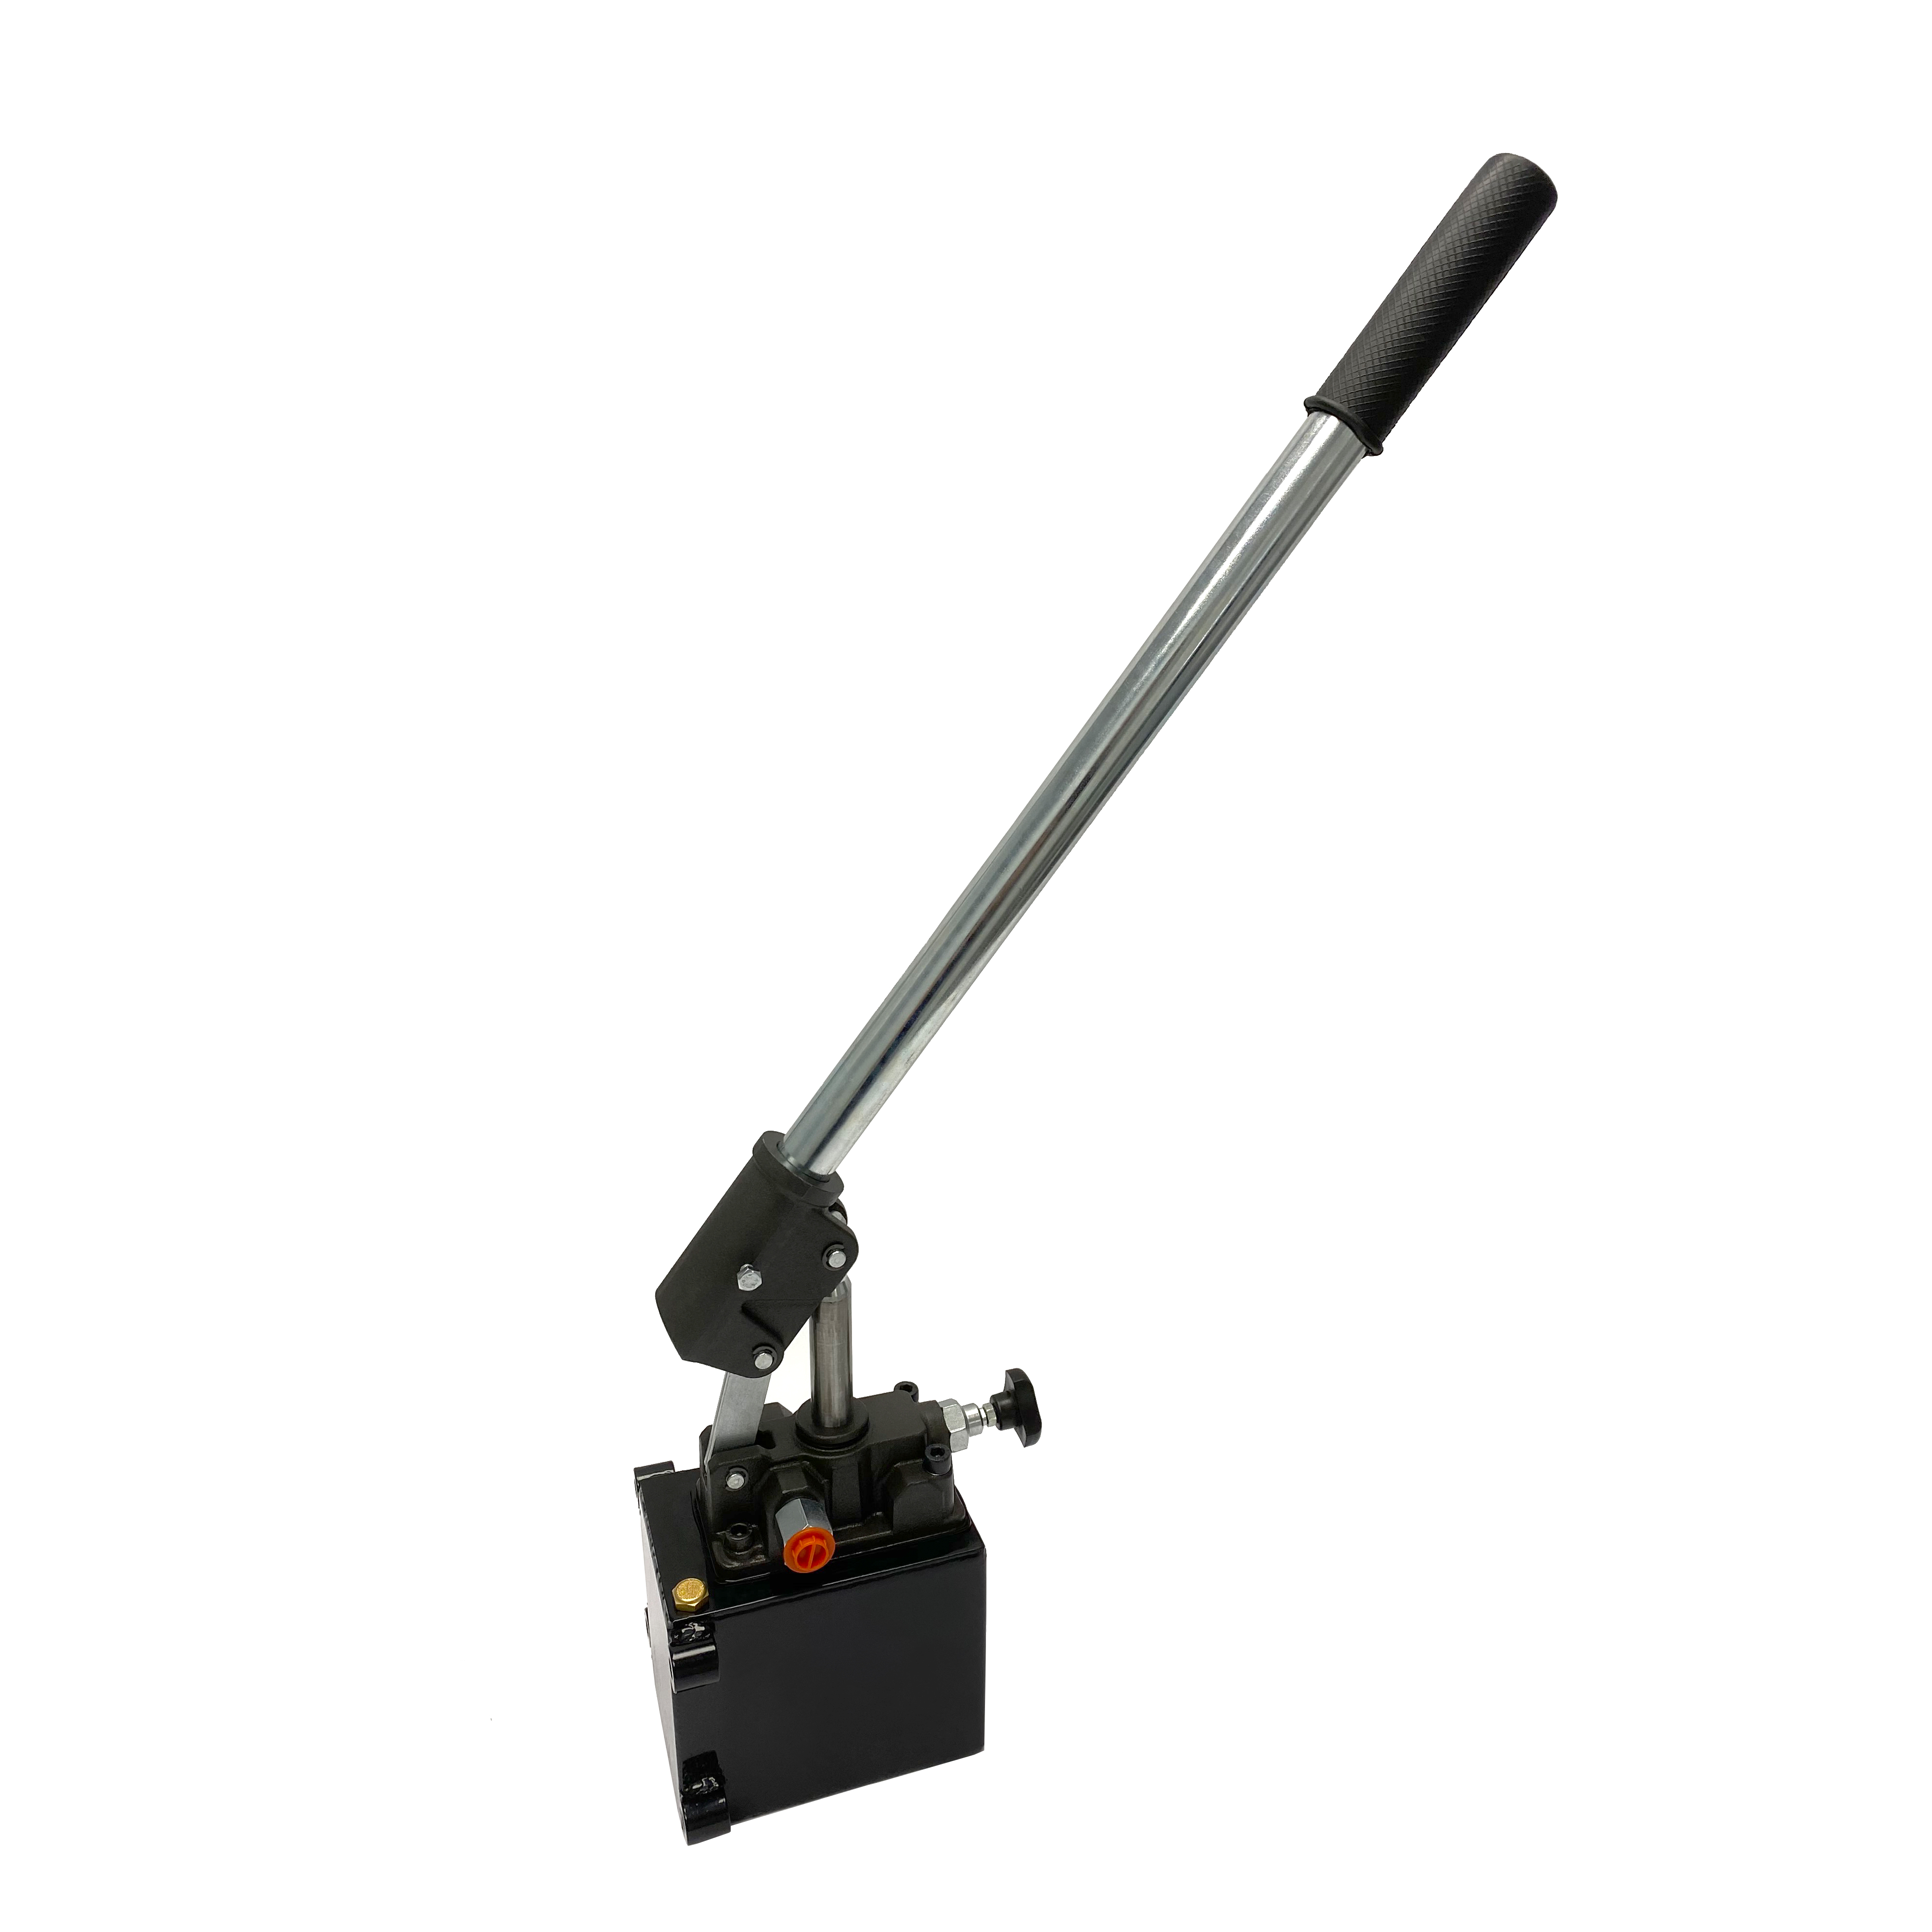 Hydraulic piston hand pump with release knob for single acting cylinder 2.7 CID with 1 quart steel tank by Hydro-Pack   Magister Hydraulics